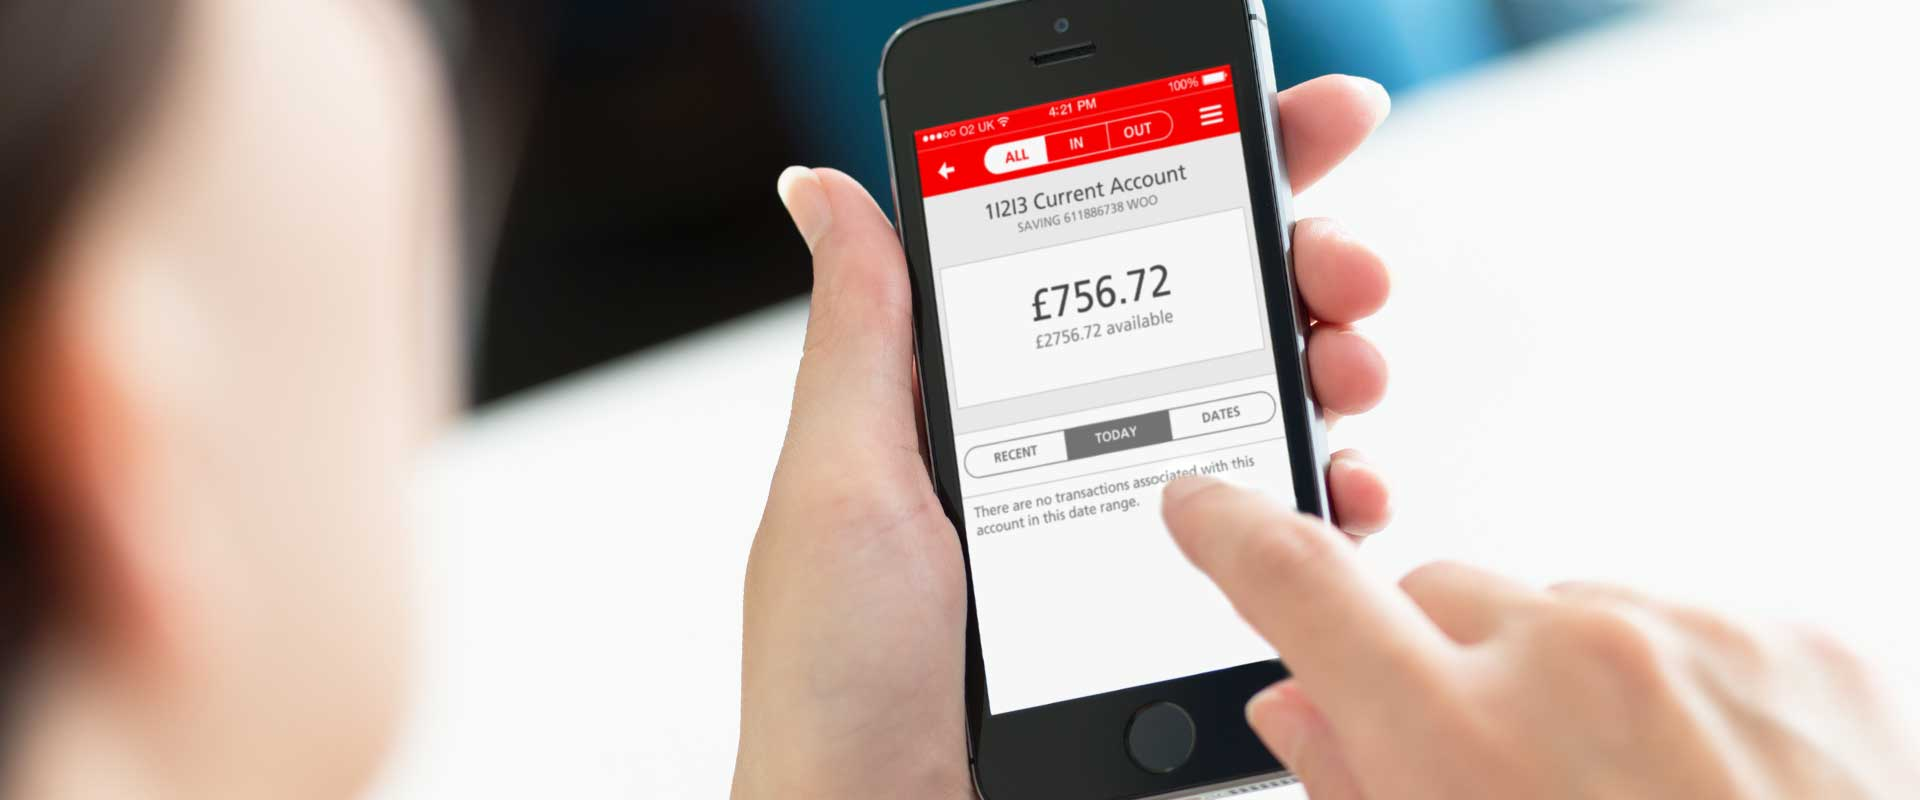 picture of a woman holding an iphone with the santander mobile banking app on the screen